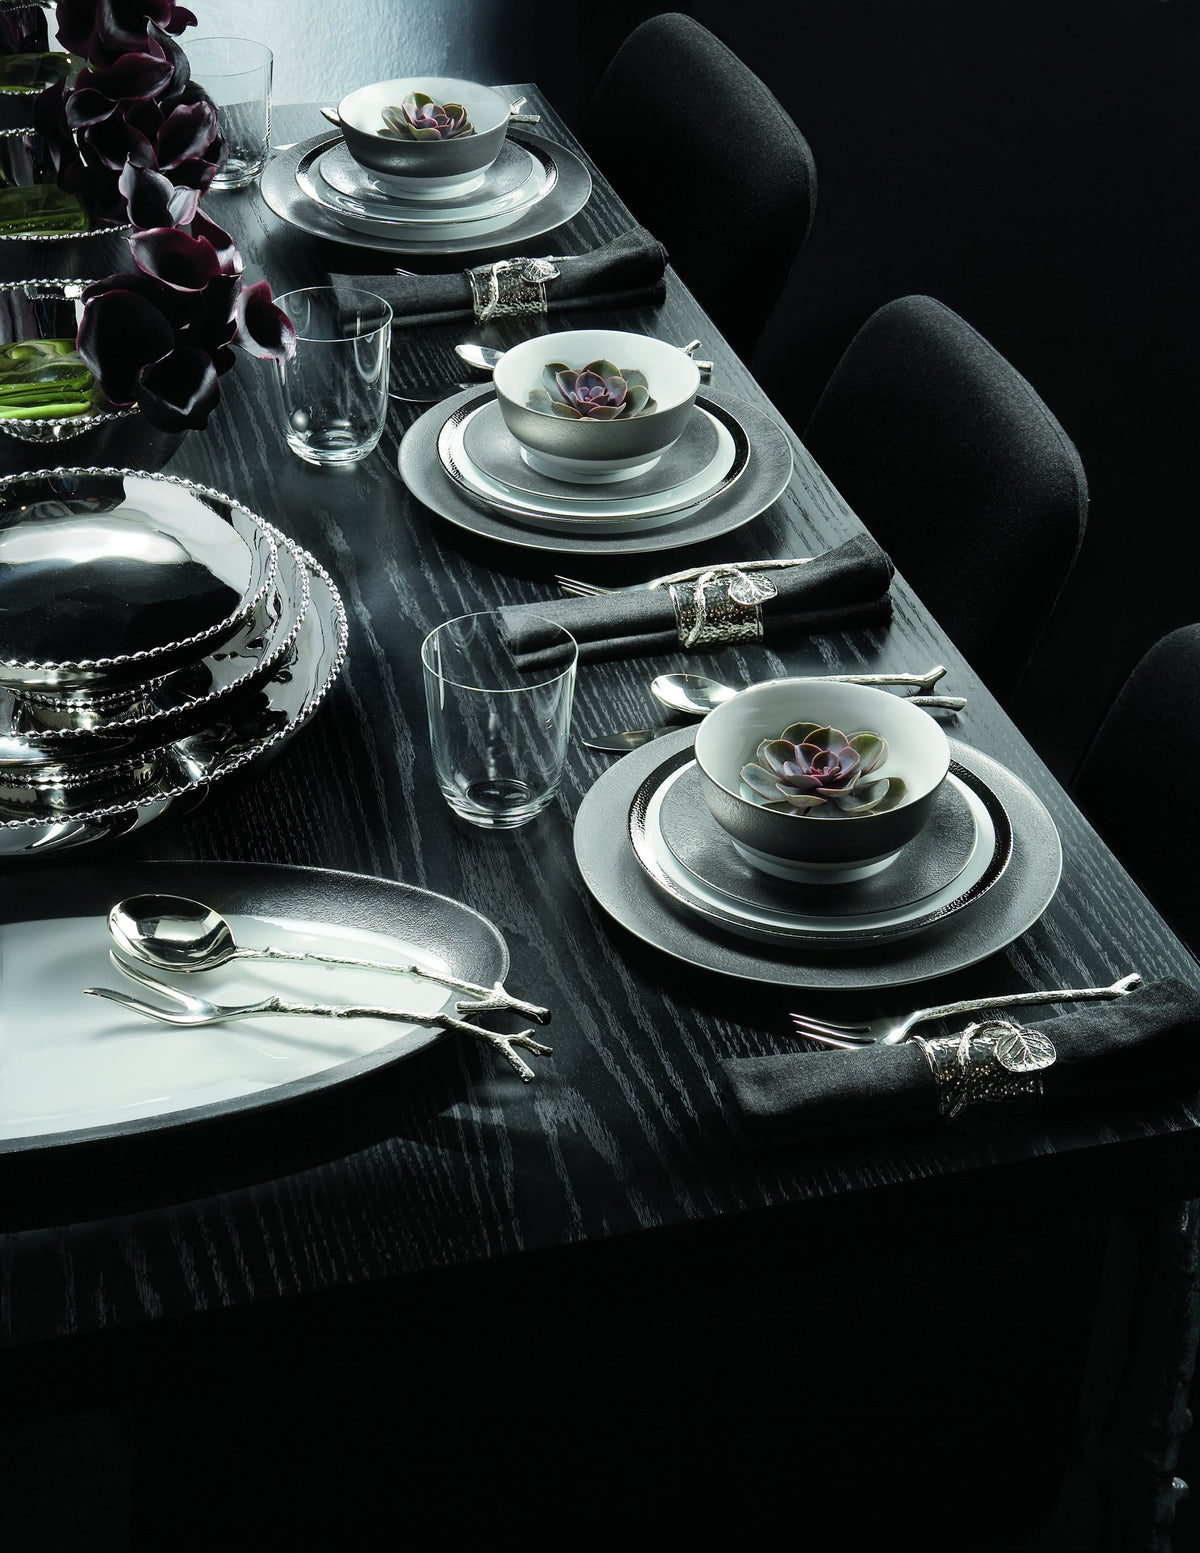 Silversmith 5-Piece Place Setting